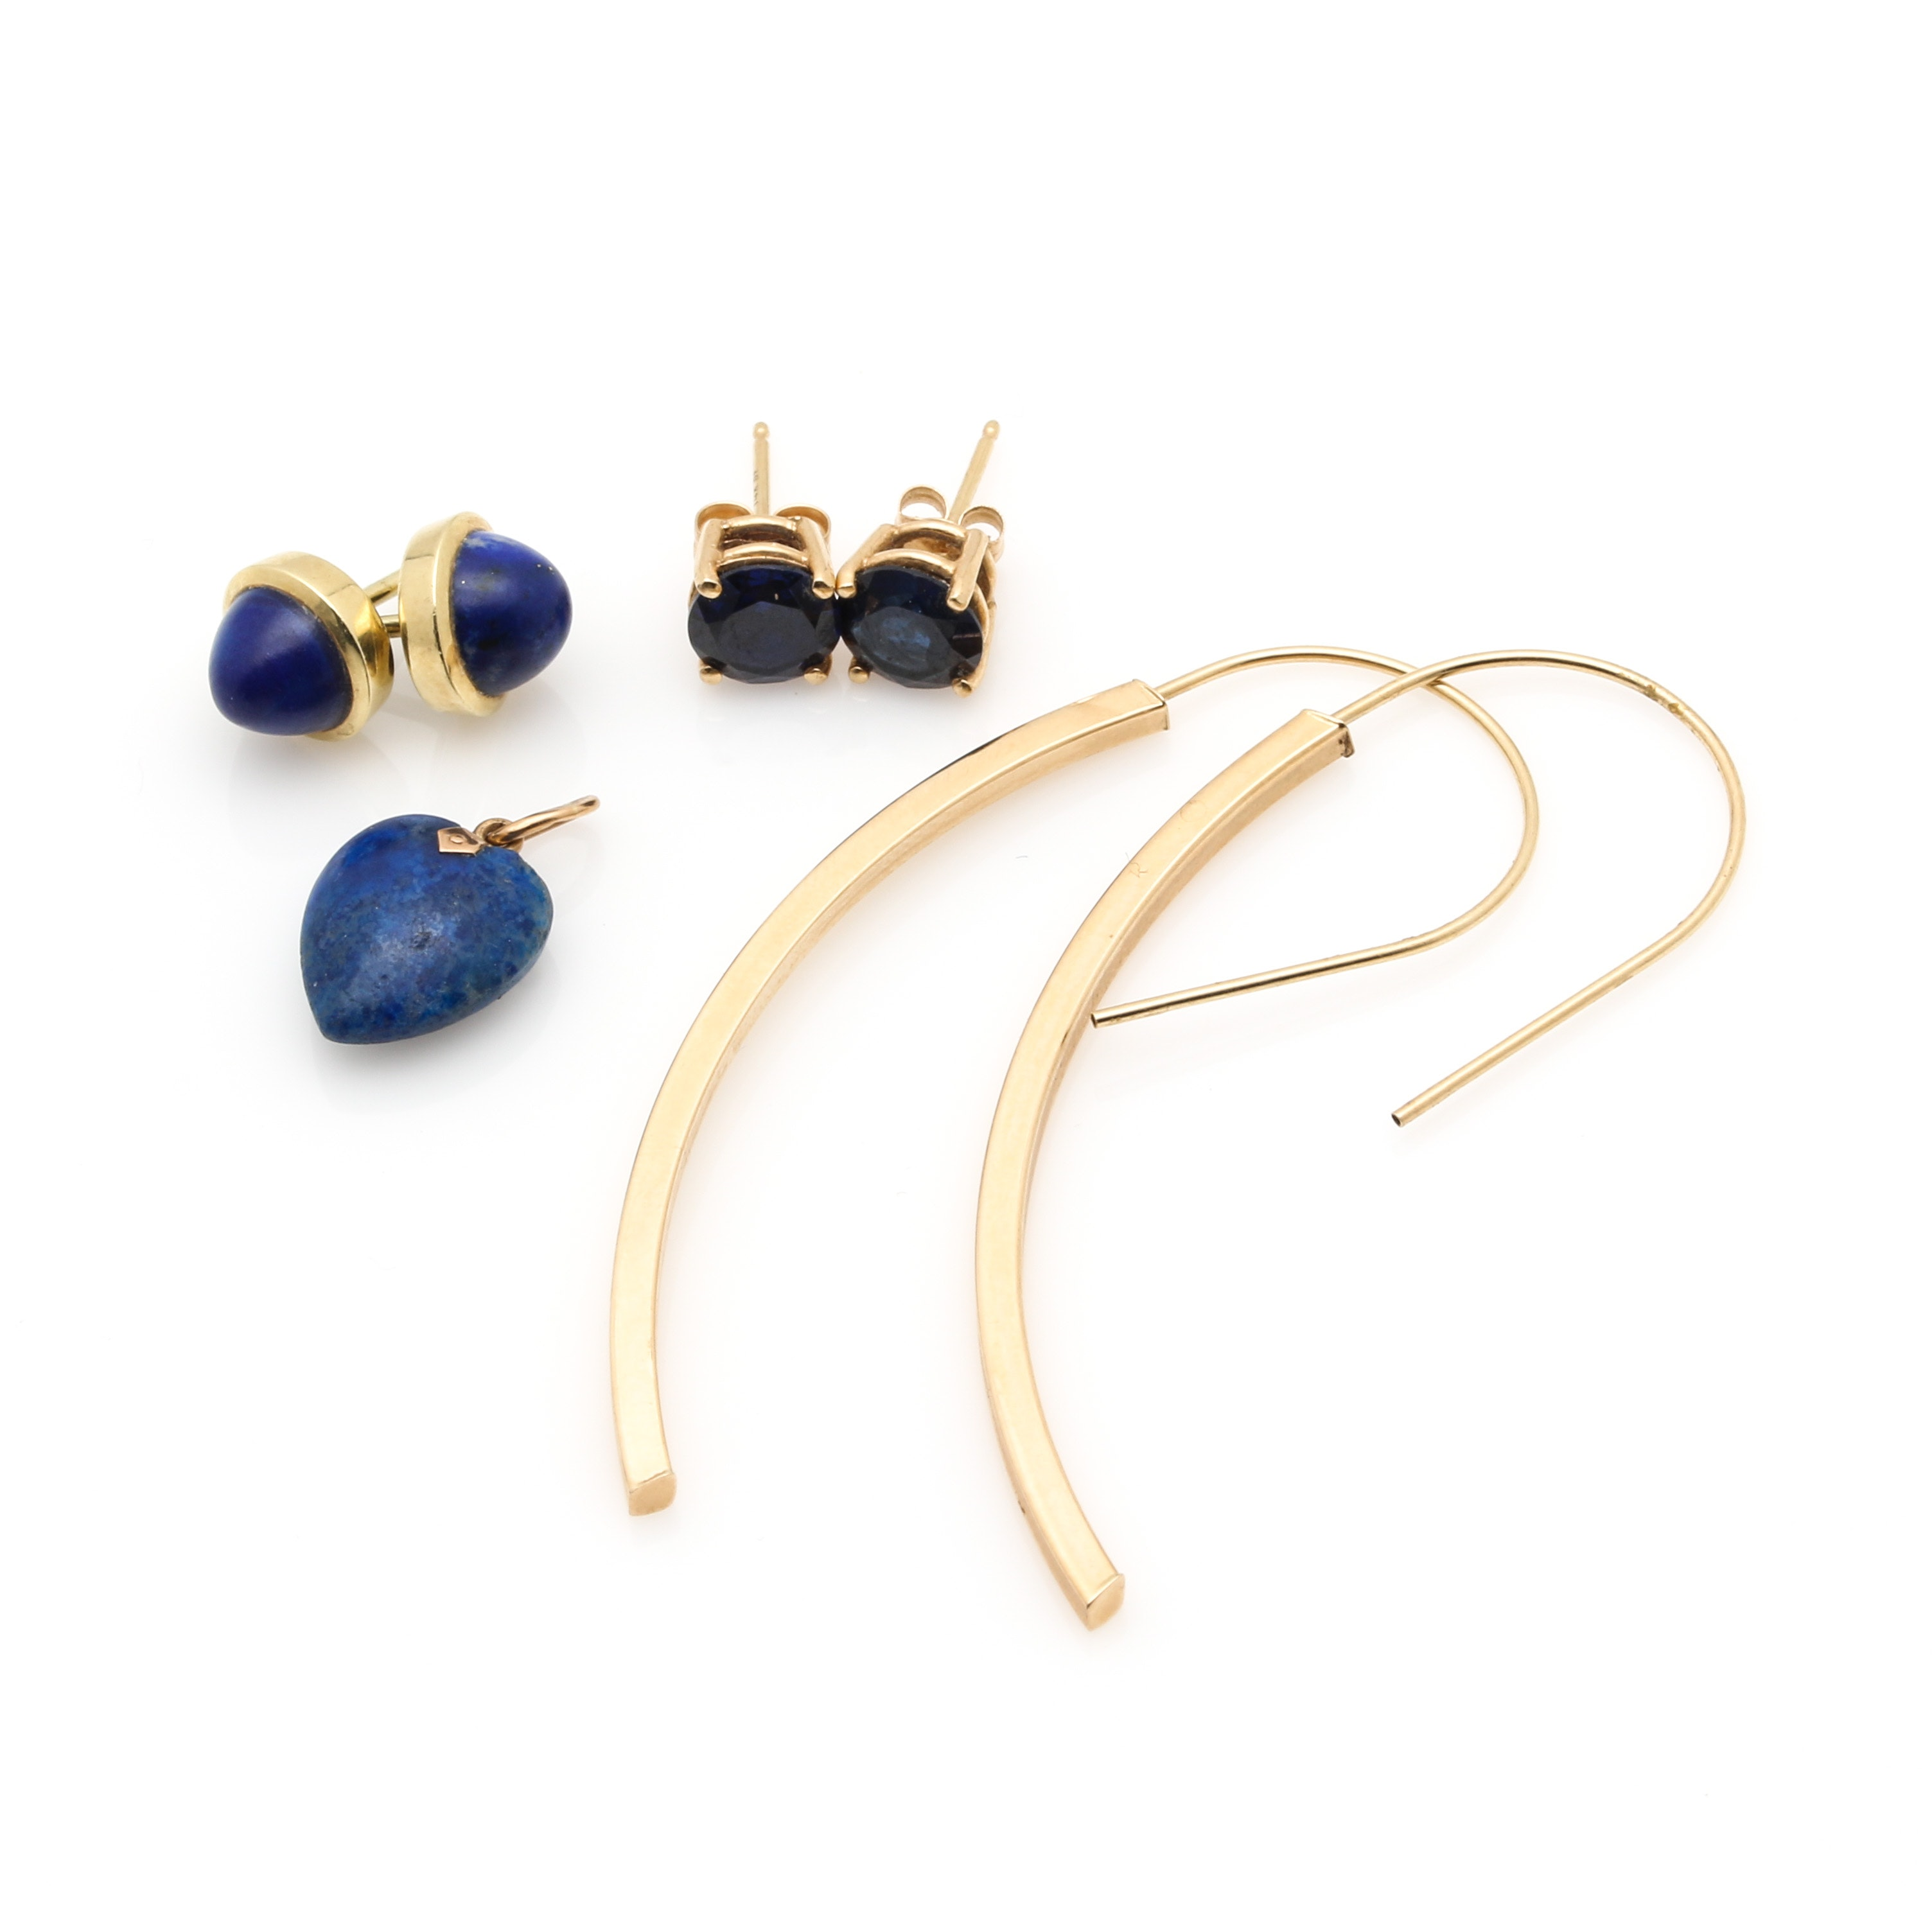 14K Yellow Gold Earrings and Pendant Including Lapis Lazuli